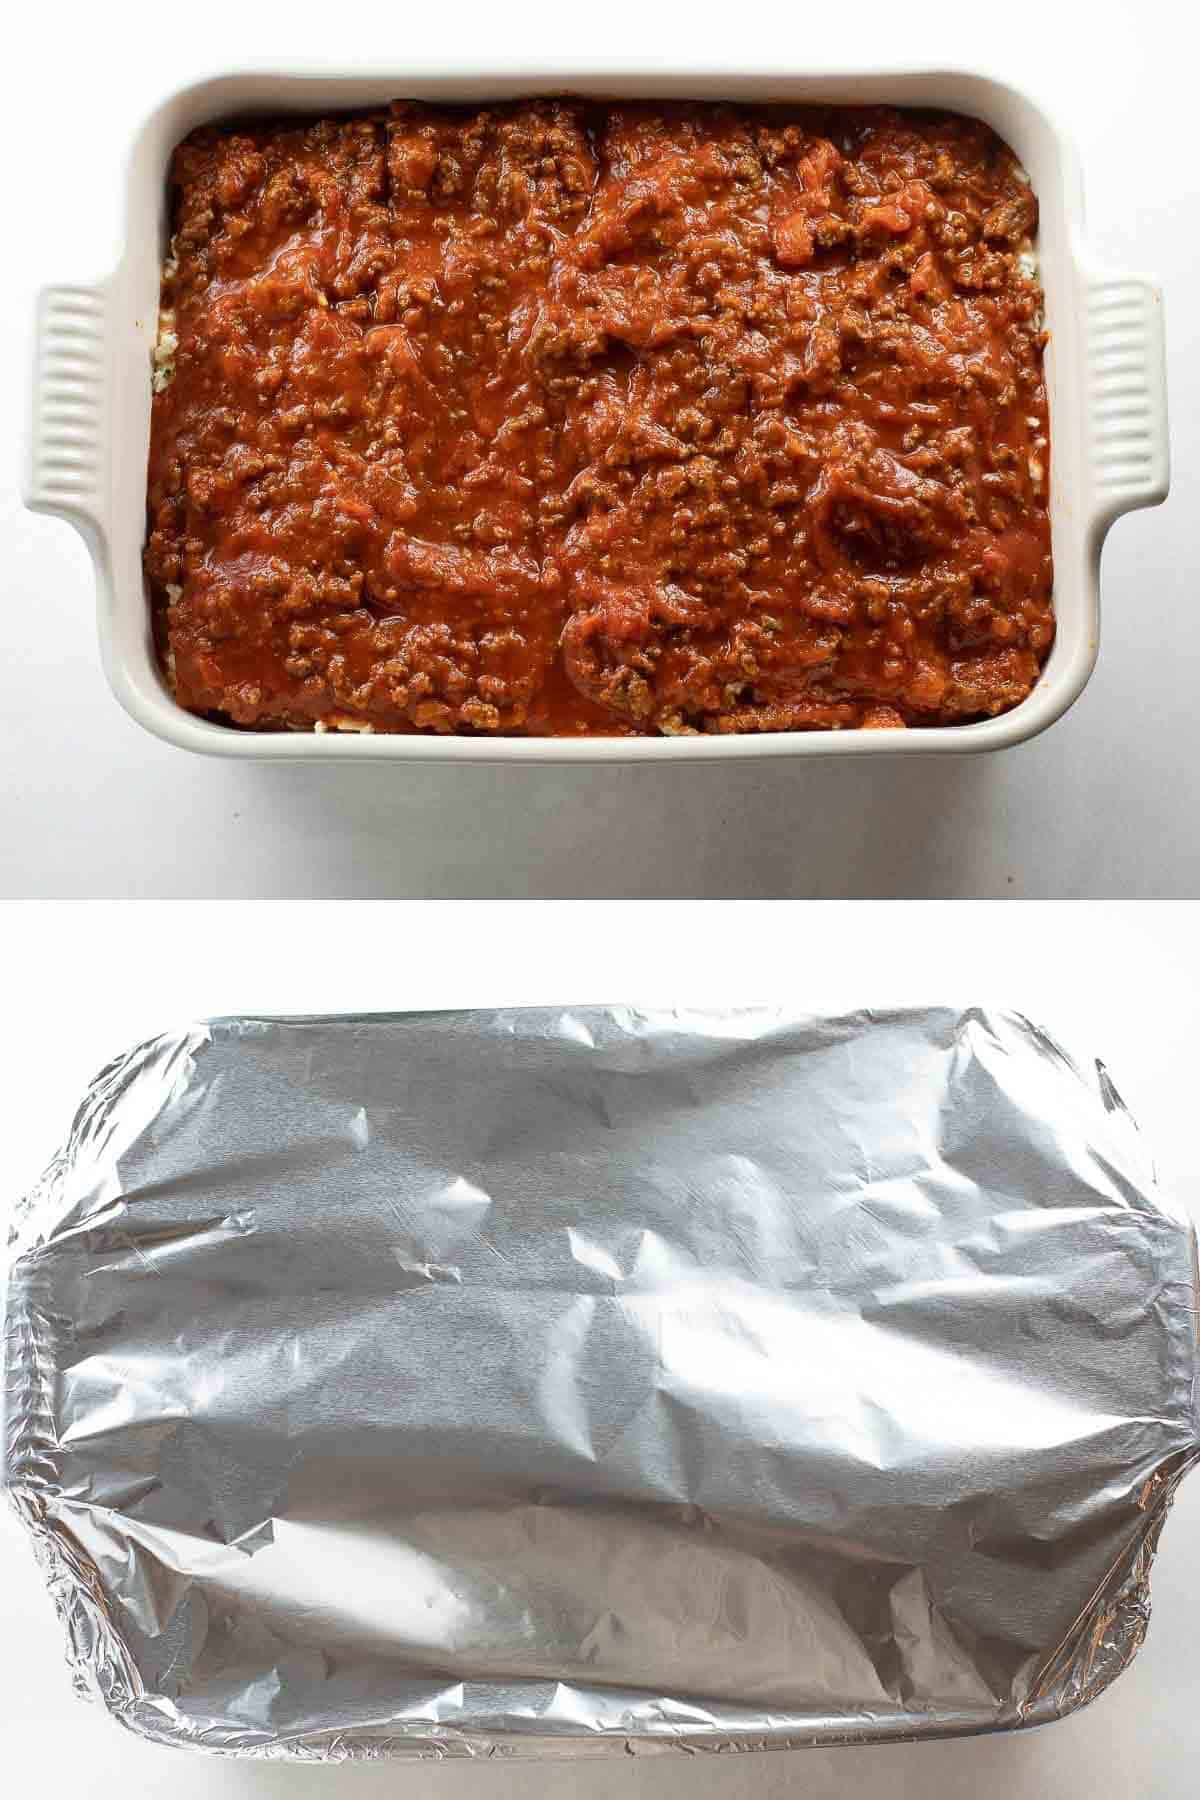 gluten free lasagna prior to baking and dish wrapped in foil before baking